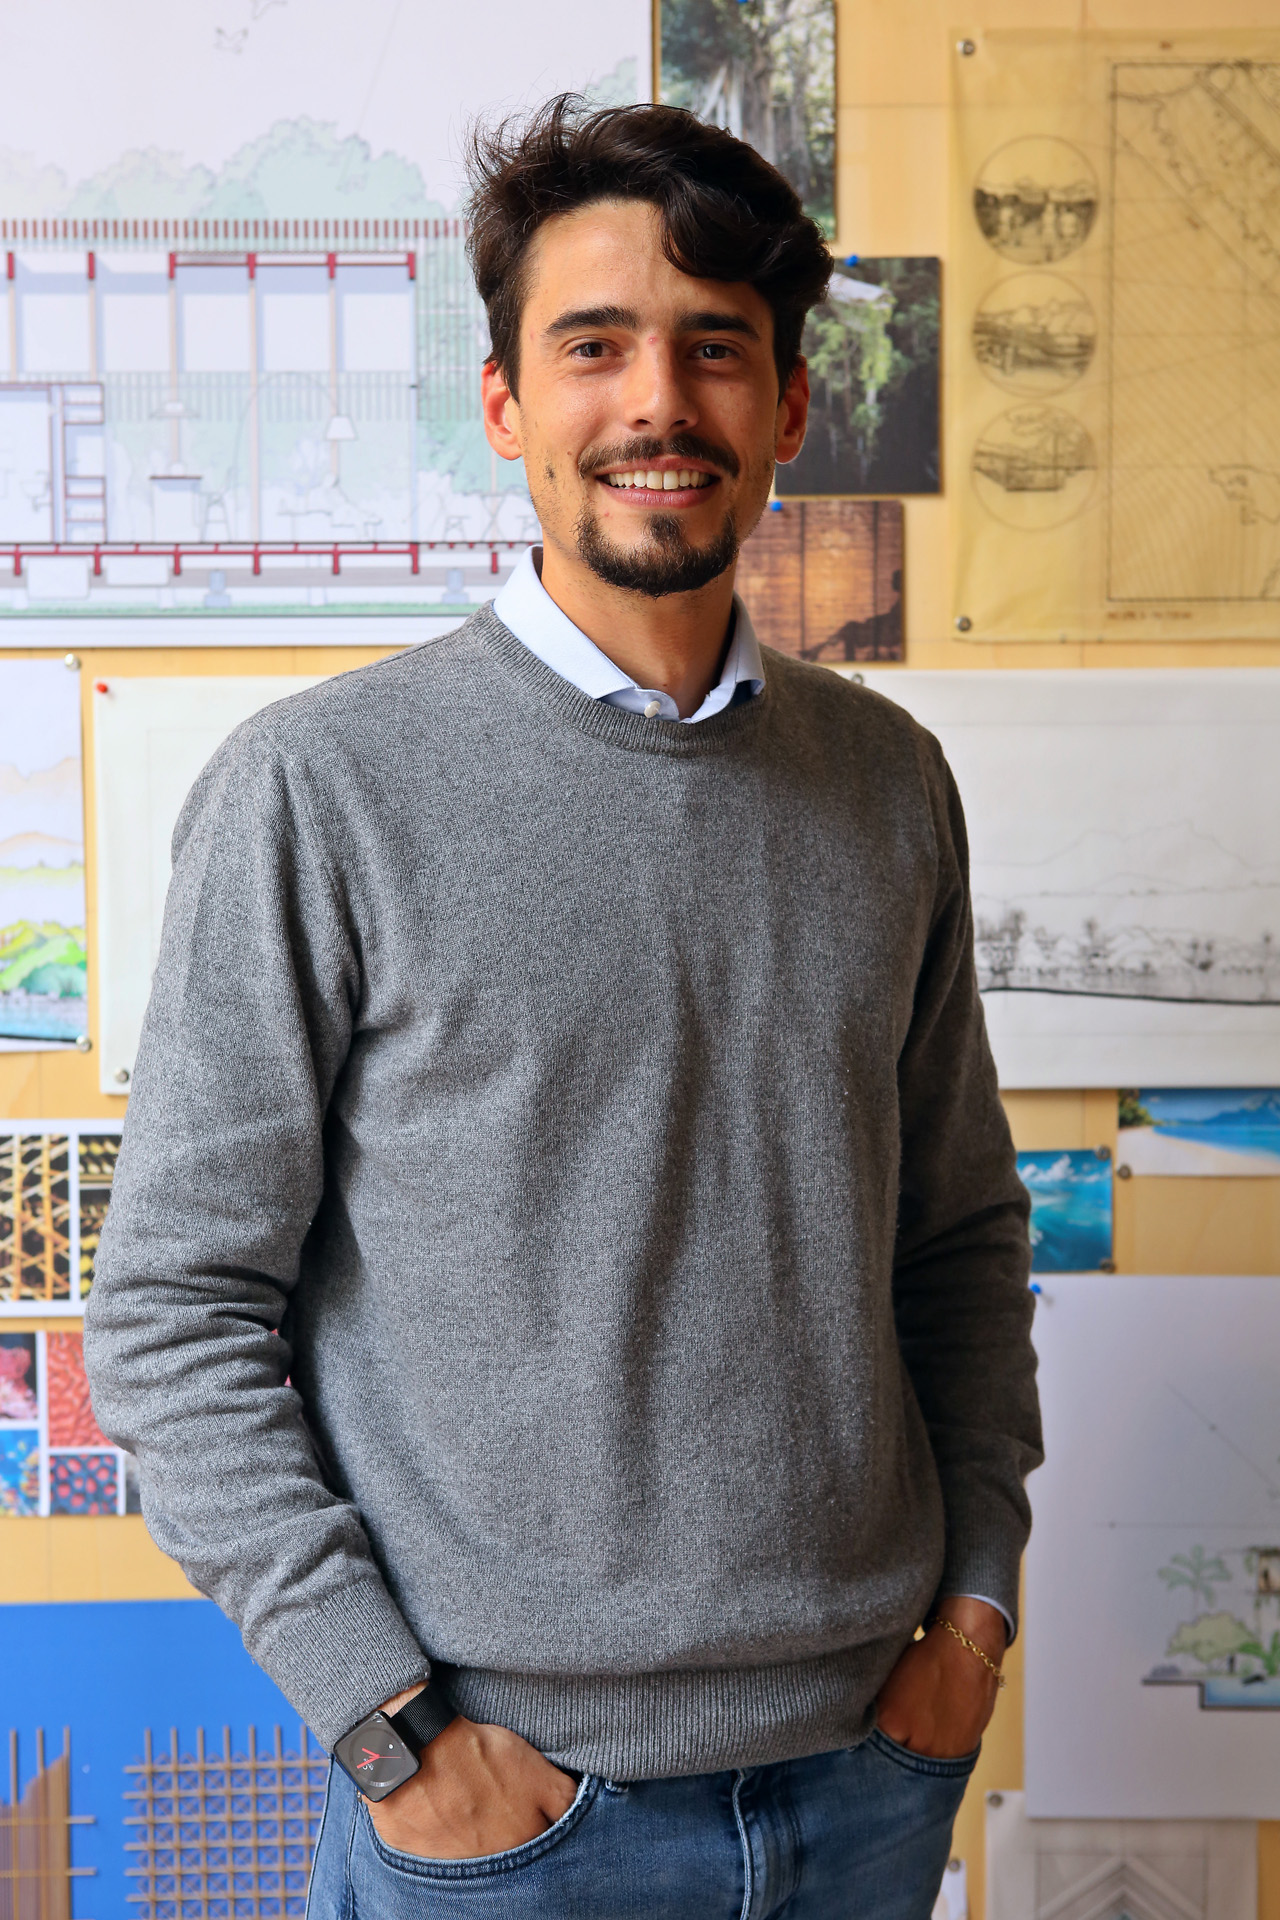 Attilio studied architecture at Polytechnic School - UNIGE in Genova. His thesis  Bagwall handbook  was shortlisted for the Young talent architecture award 2016 edition.